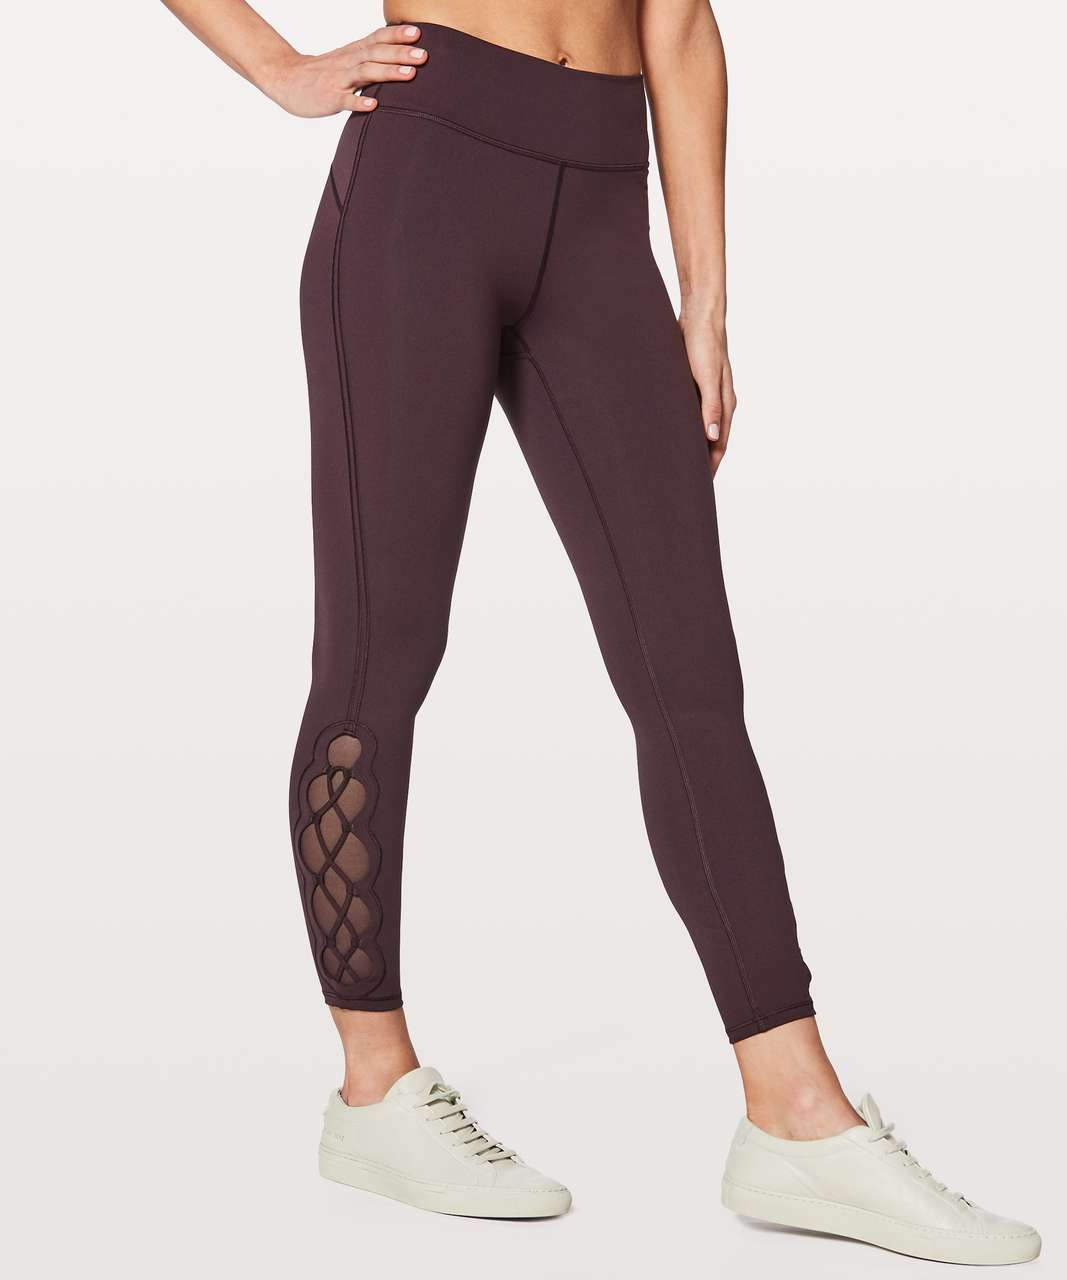 "Lululemon Tied To It 7/8 Tight 25"" - Black Cherry"